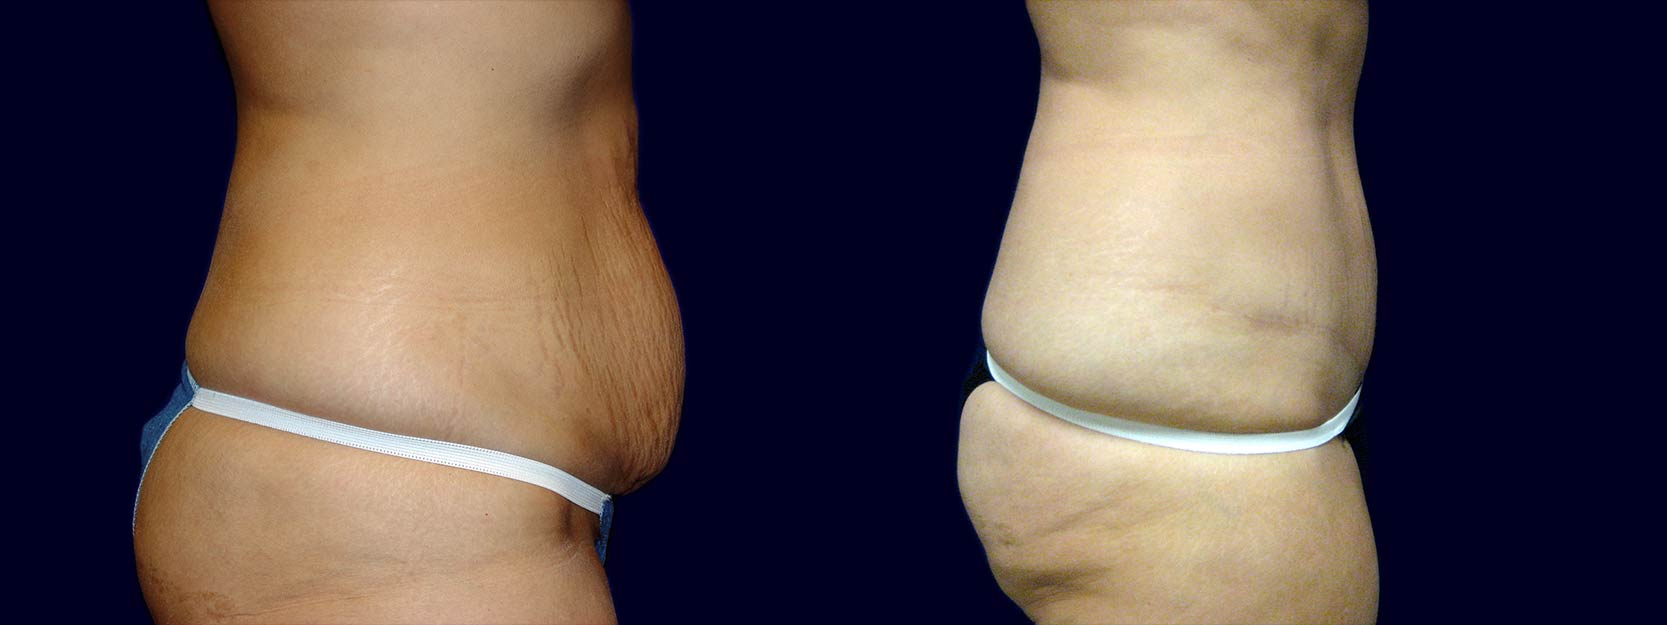 Right Profile View - Tummy Tuck After Pregnancy